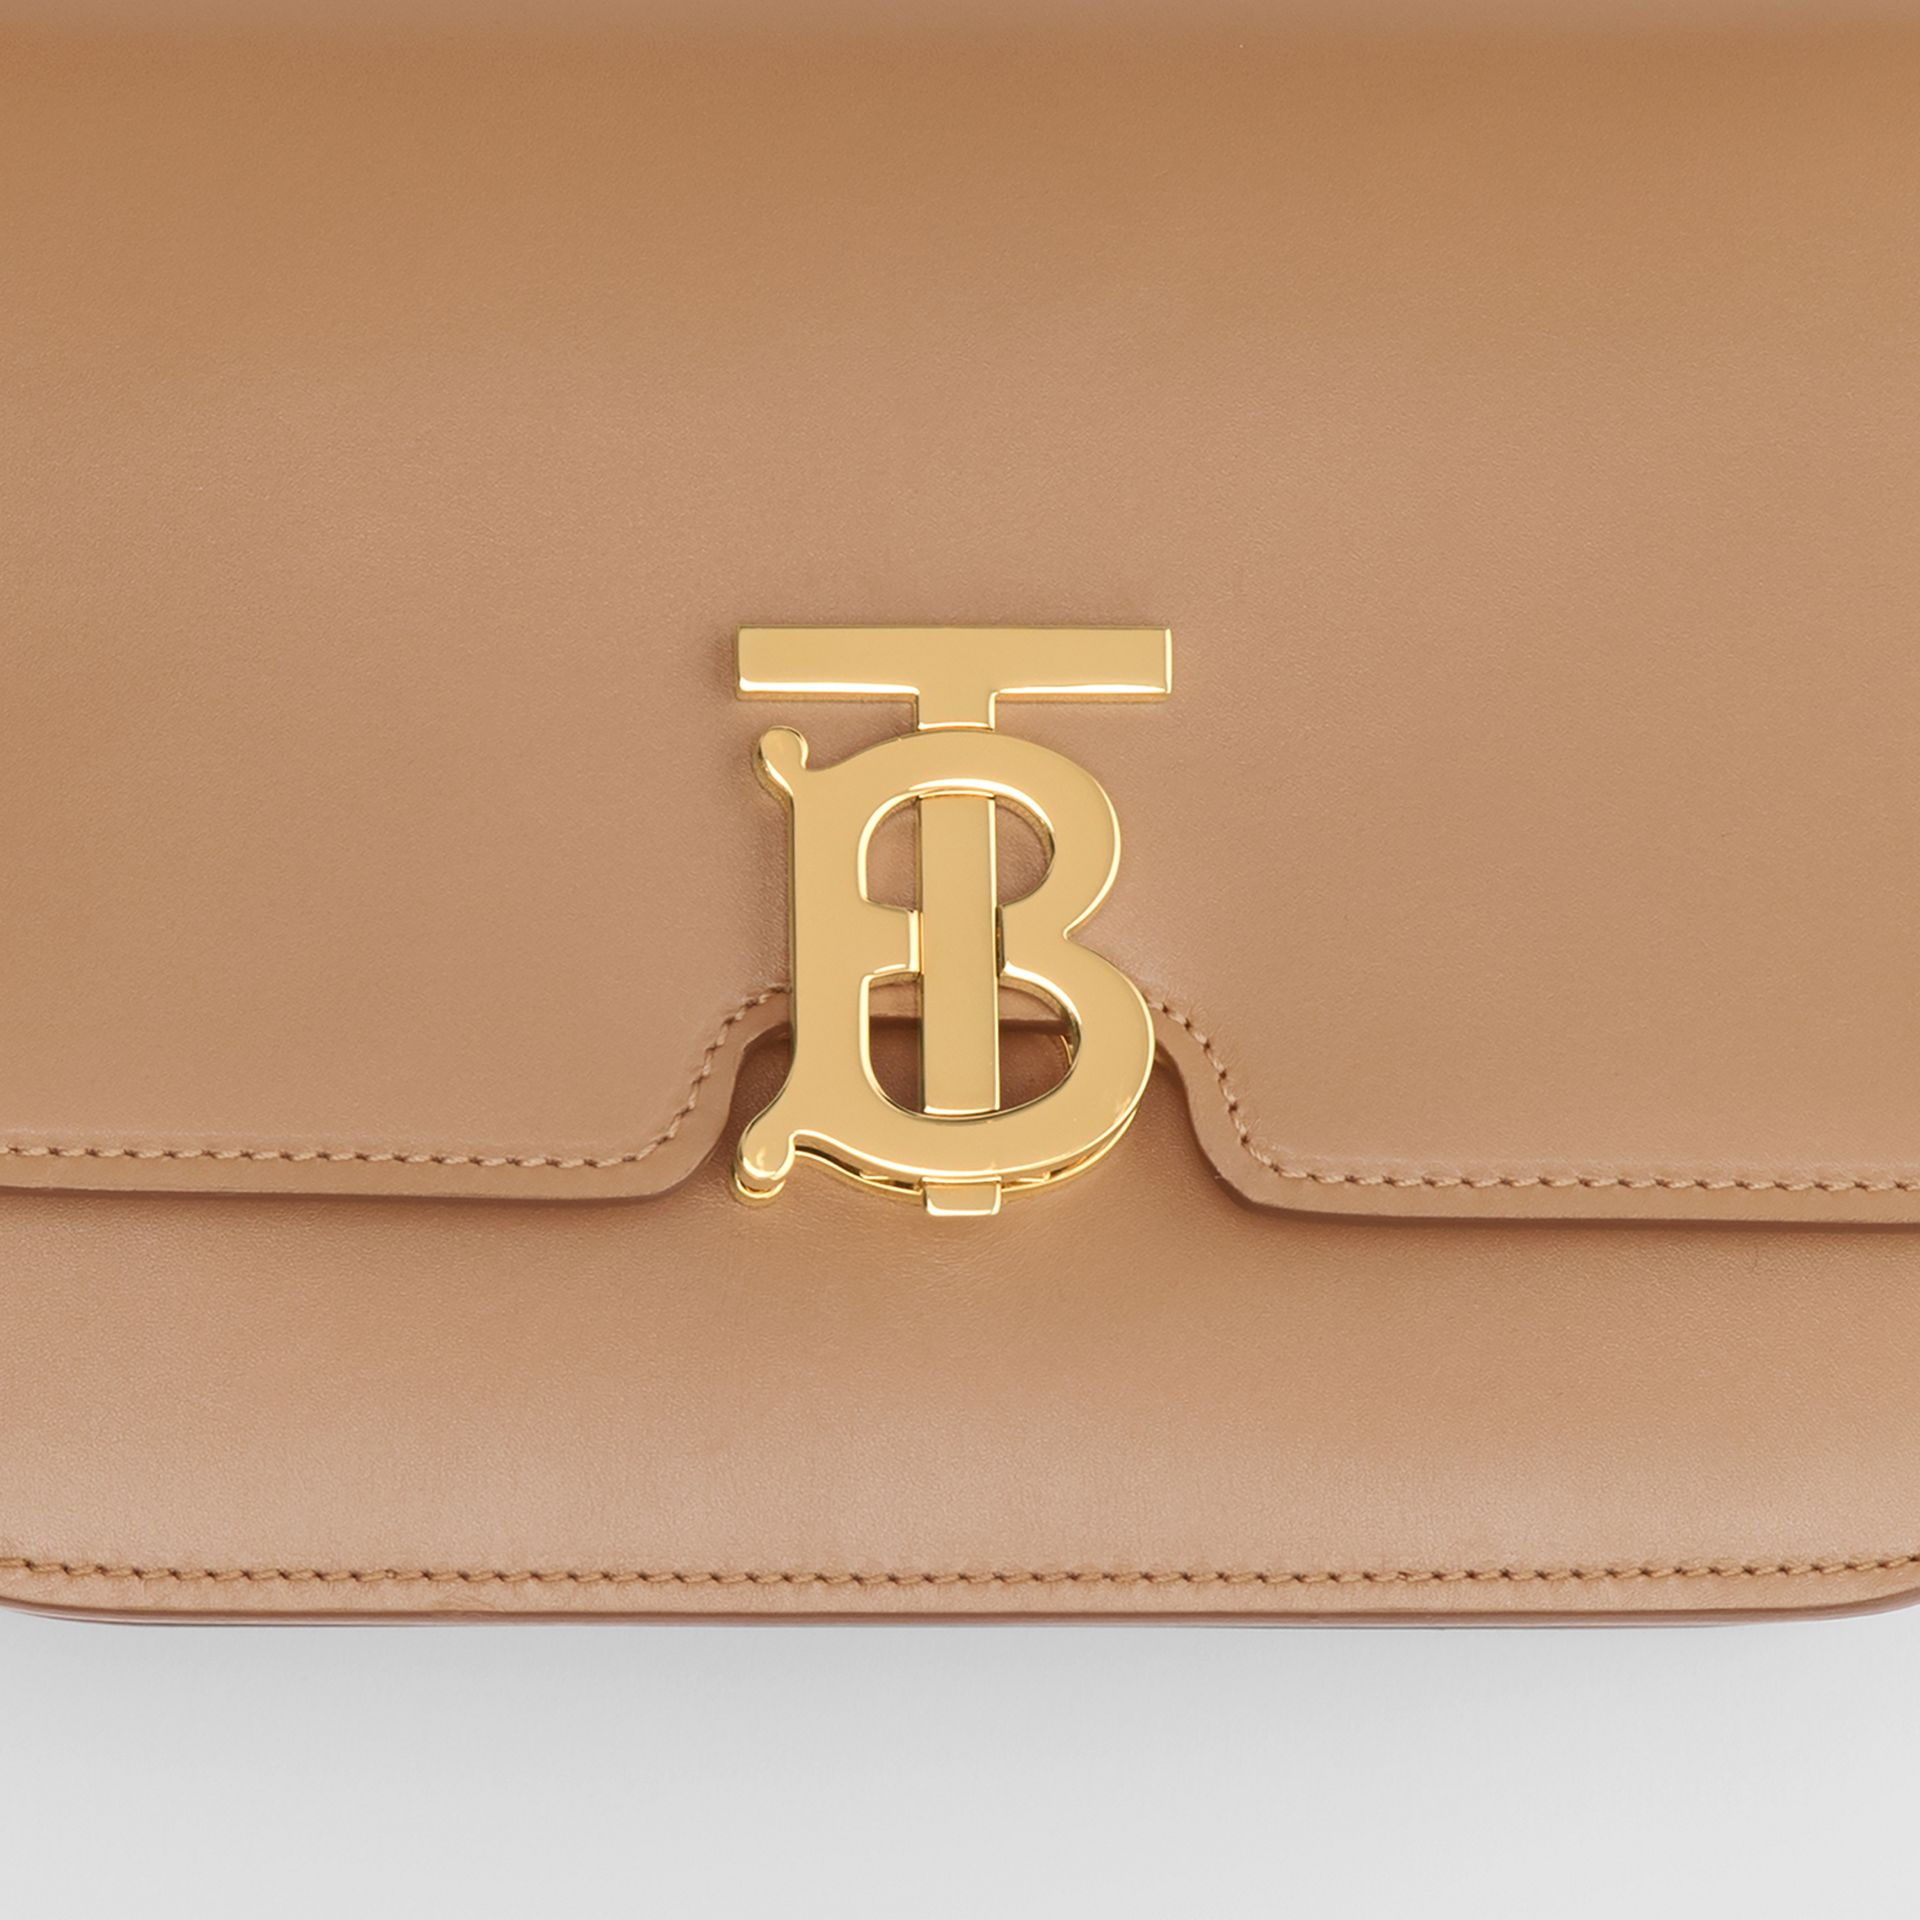 Small Leather TB Bag in Light Camel - Women | Burberry Hong Kong S.A.R - gallery image 1